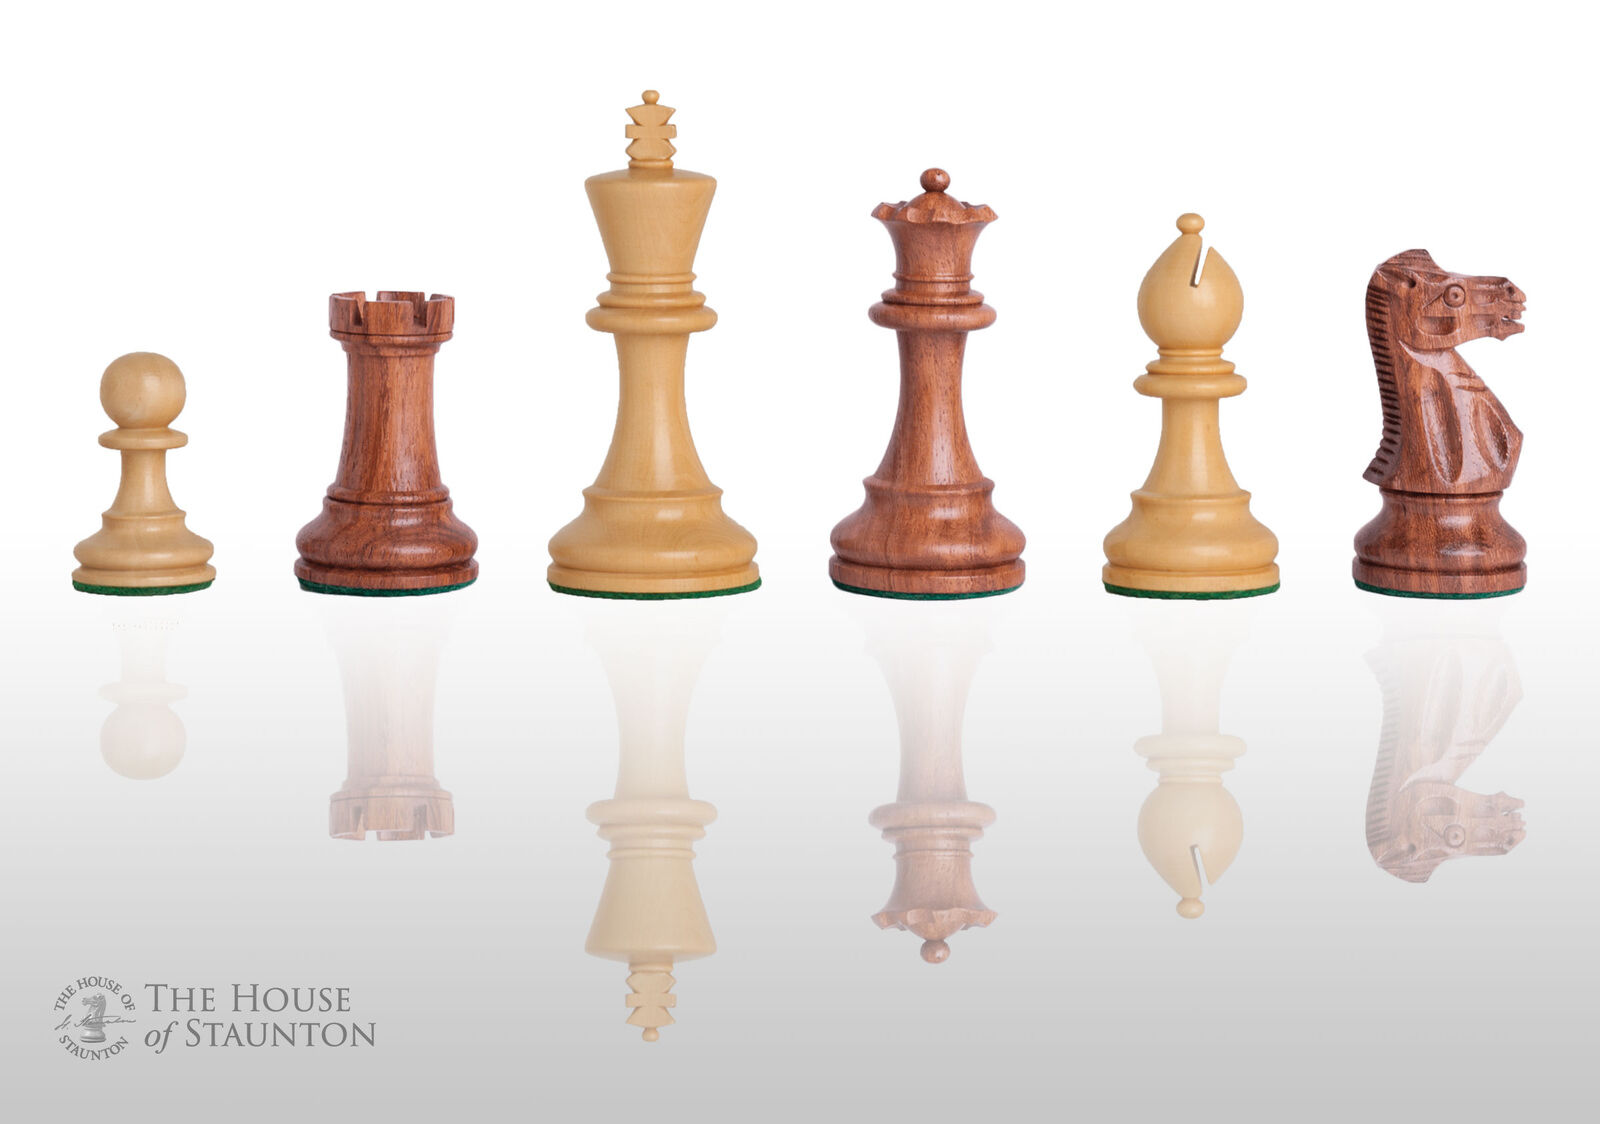 USCF Sales The Grandmaster Chess Set - Pieces Only - 4.0  King - oroen Rosewood